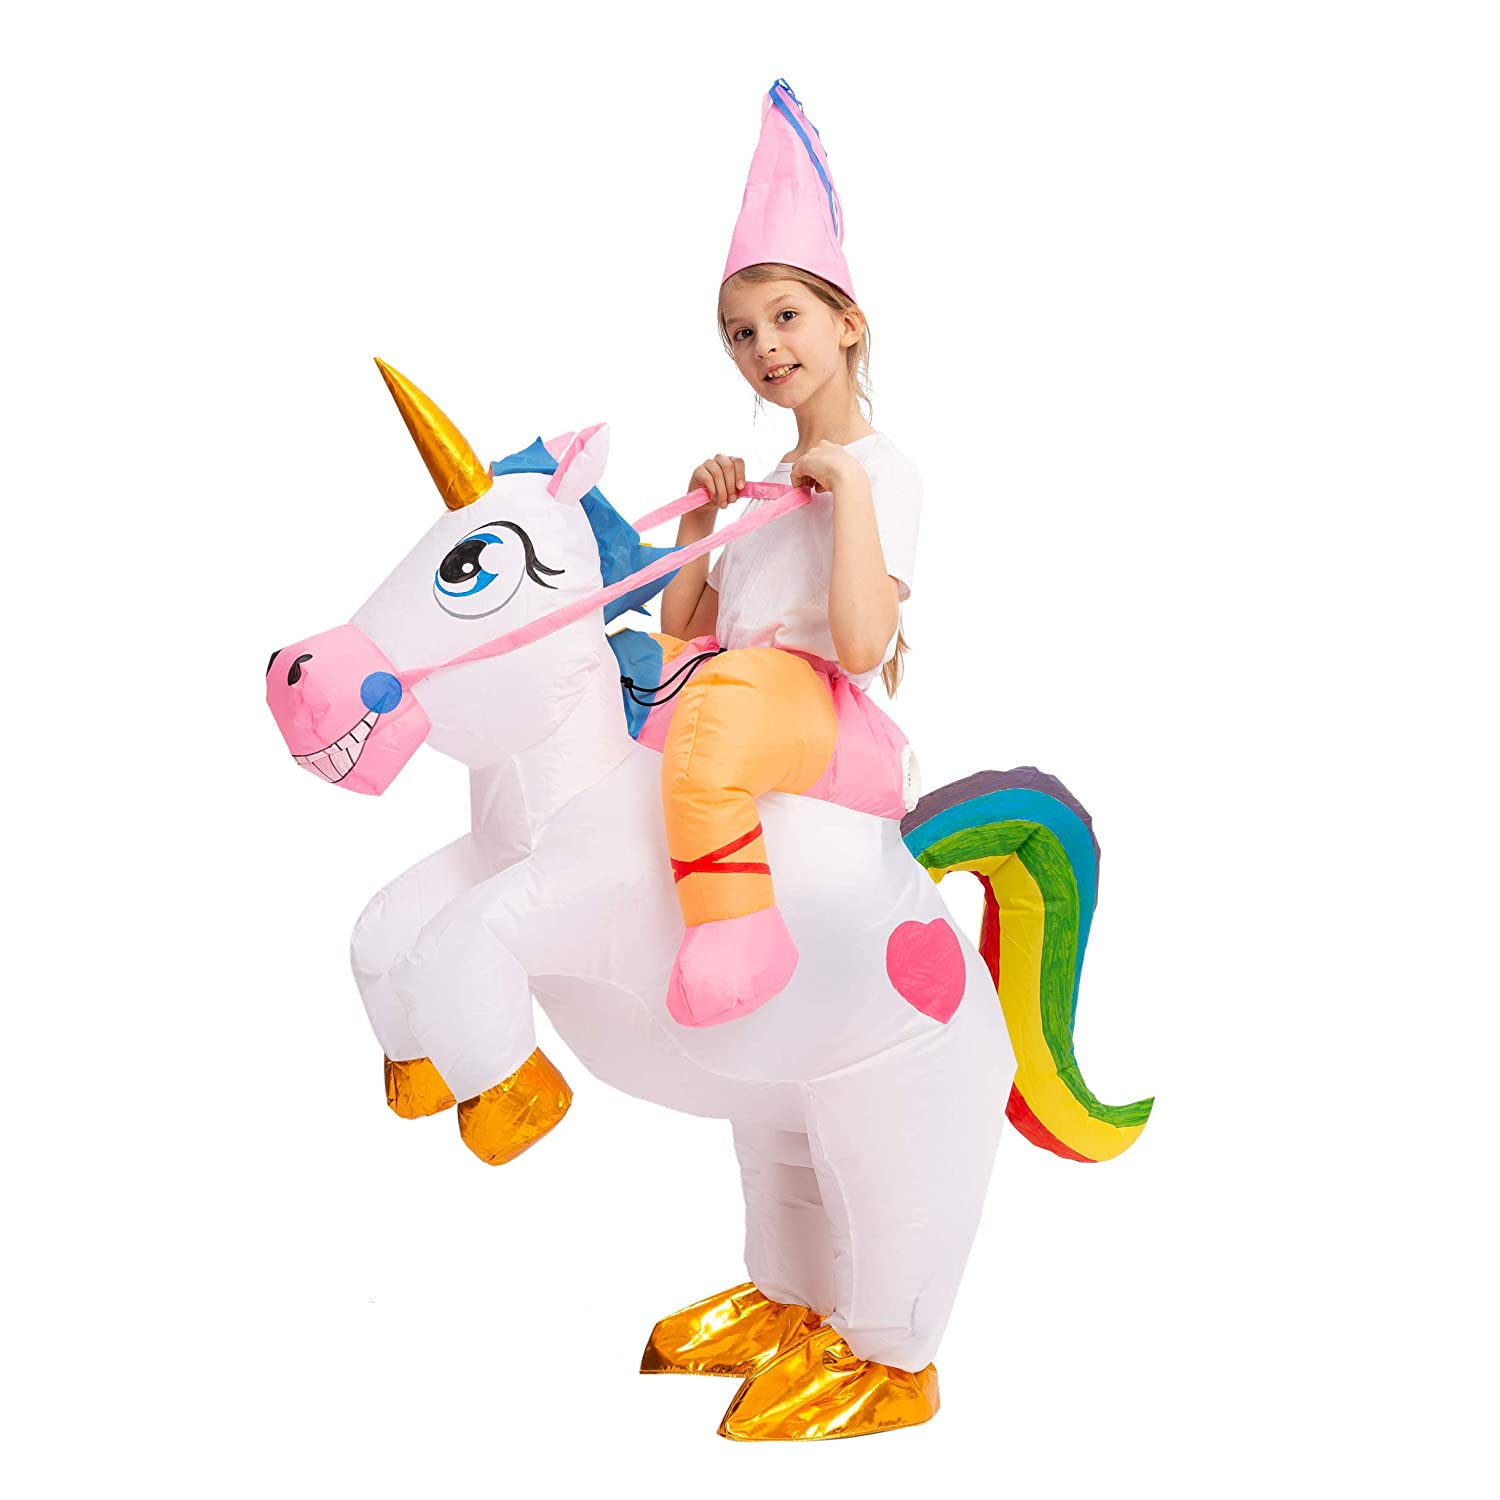 Spooktacular Creations Inflatable Costume Unicorn Riding a Unicorn Air Blow-up Deluxe Halloween Costume